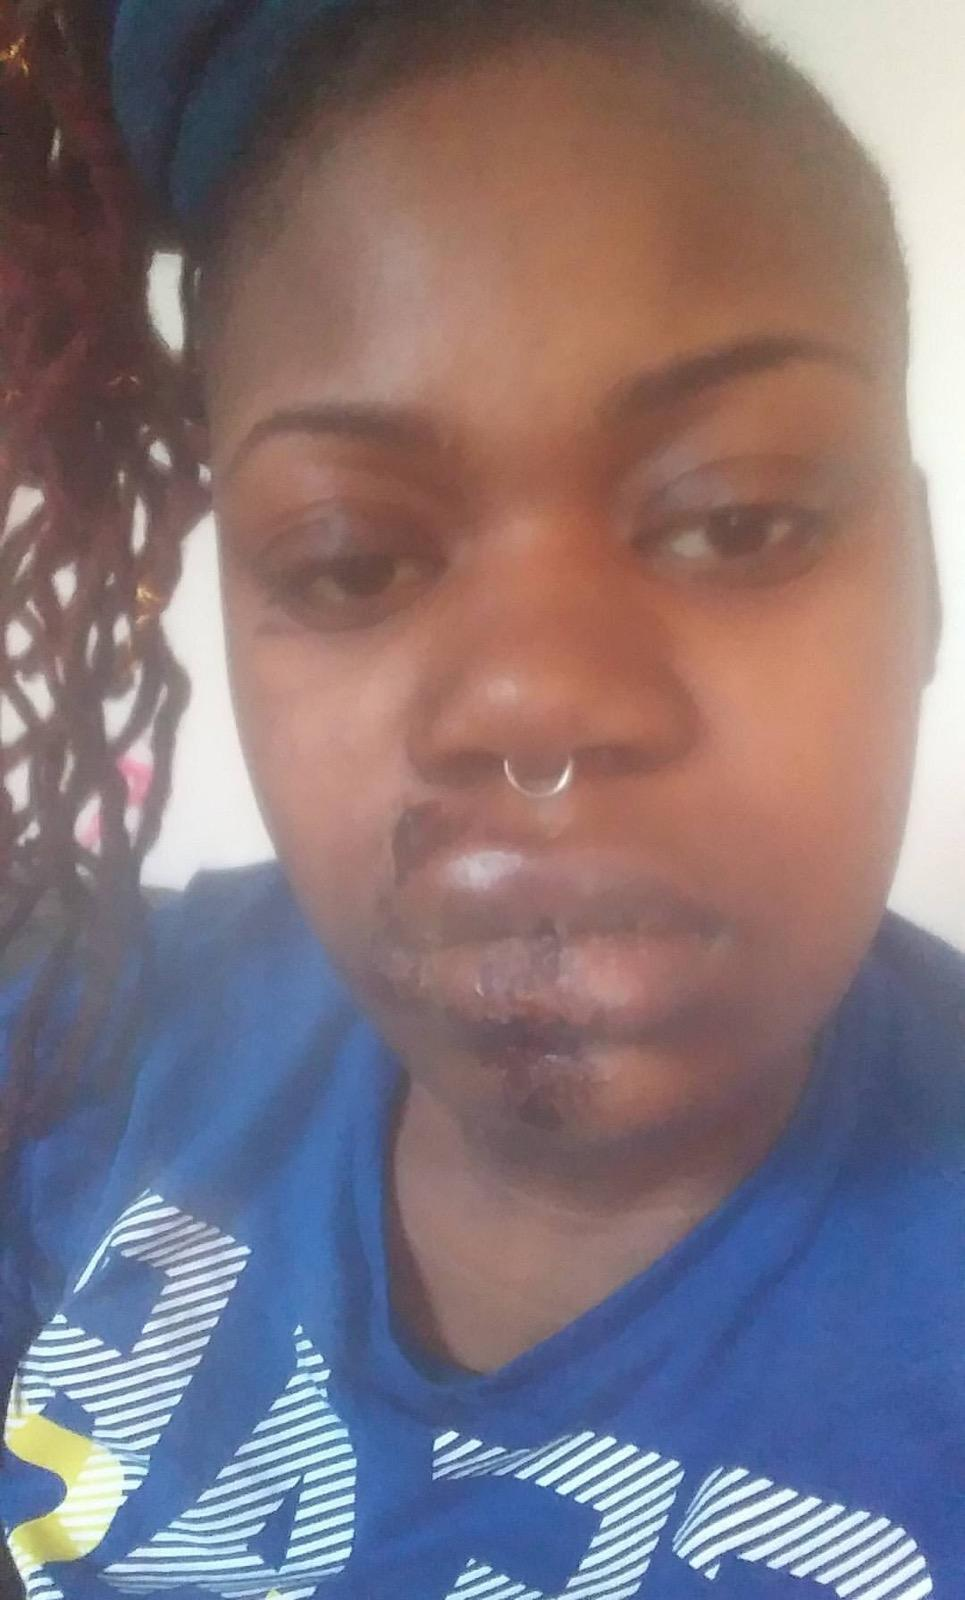 Attorney Yaida Ford Secures Settlement for Young Victim of Transit Police Attack